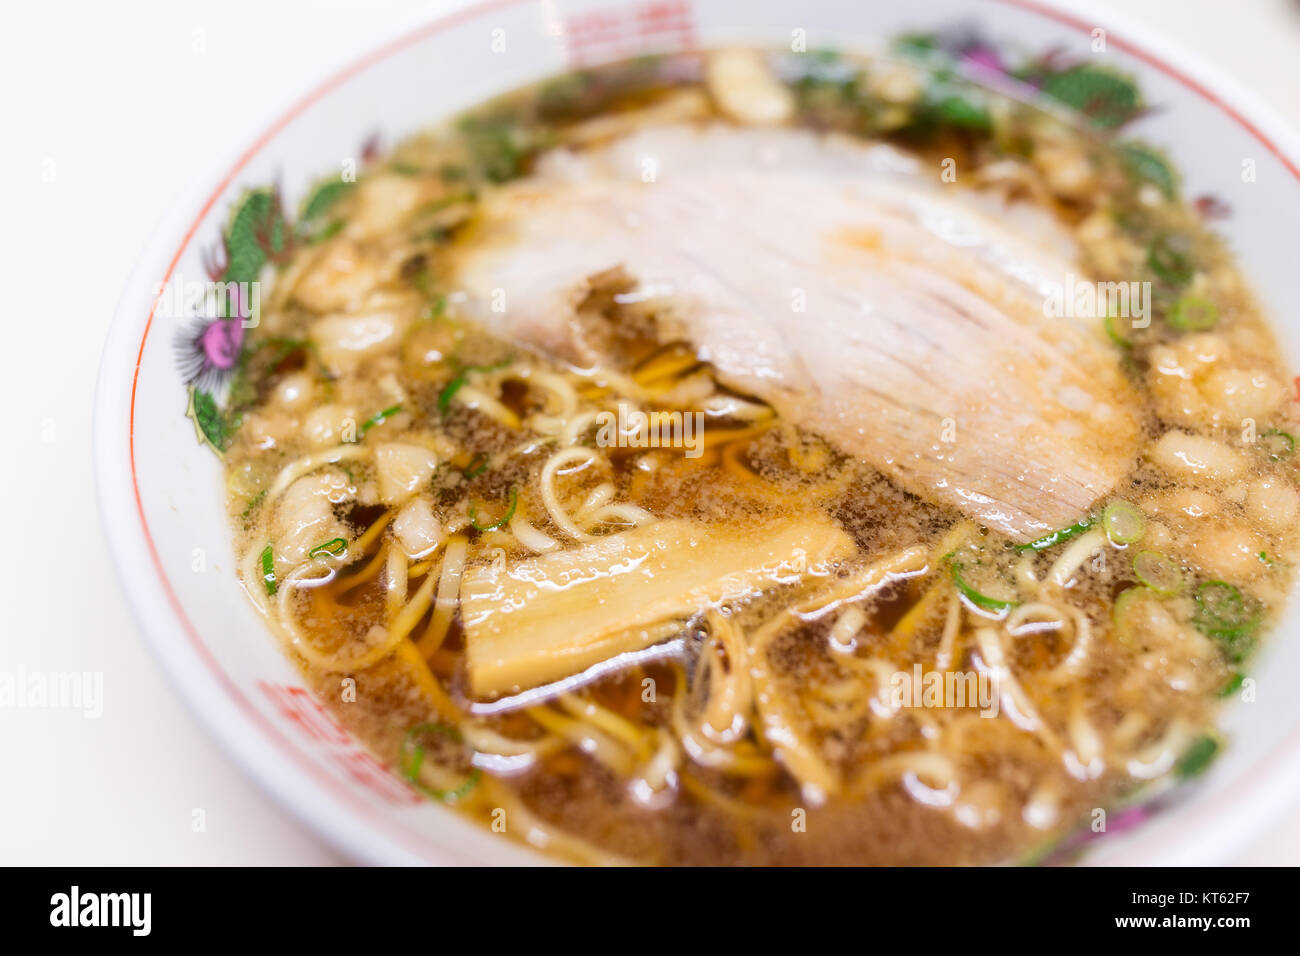 Spicy Green Onion Ramen Stock Photos Amp Spicy Green Onion